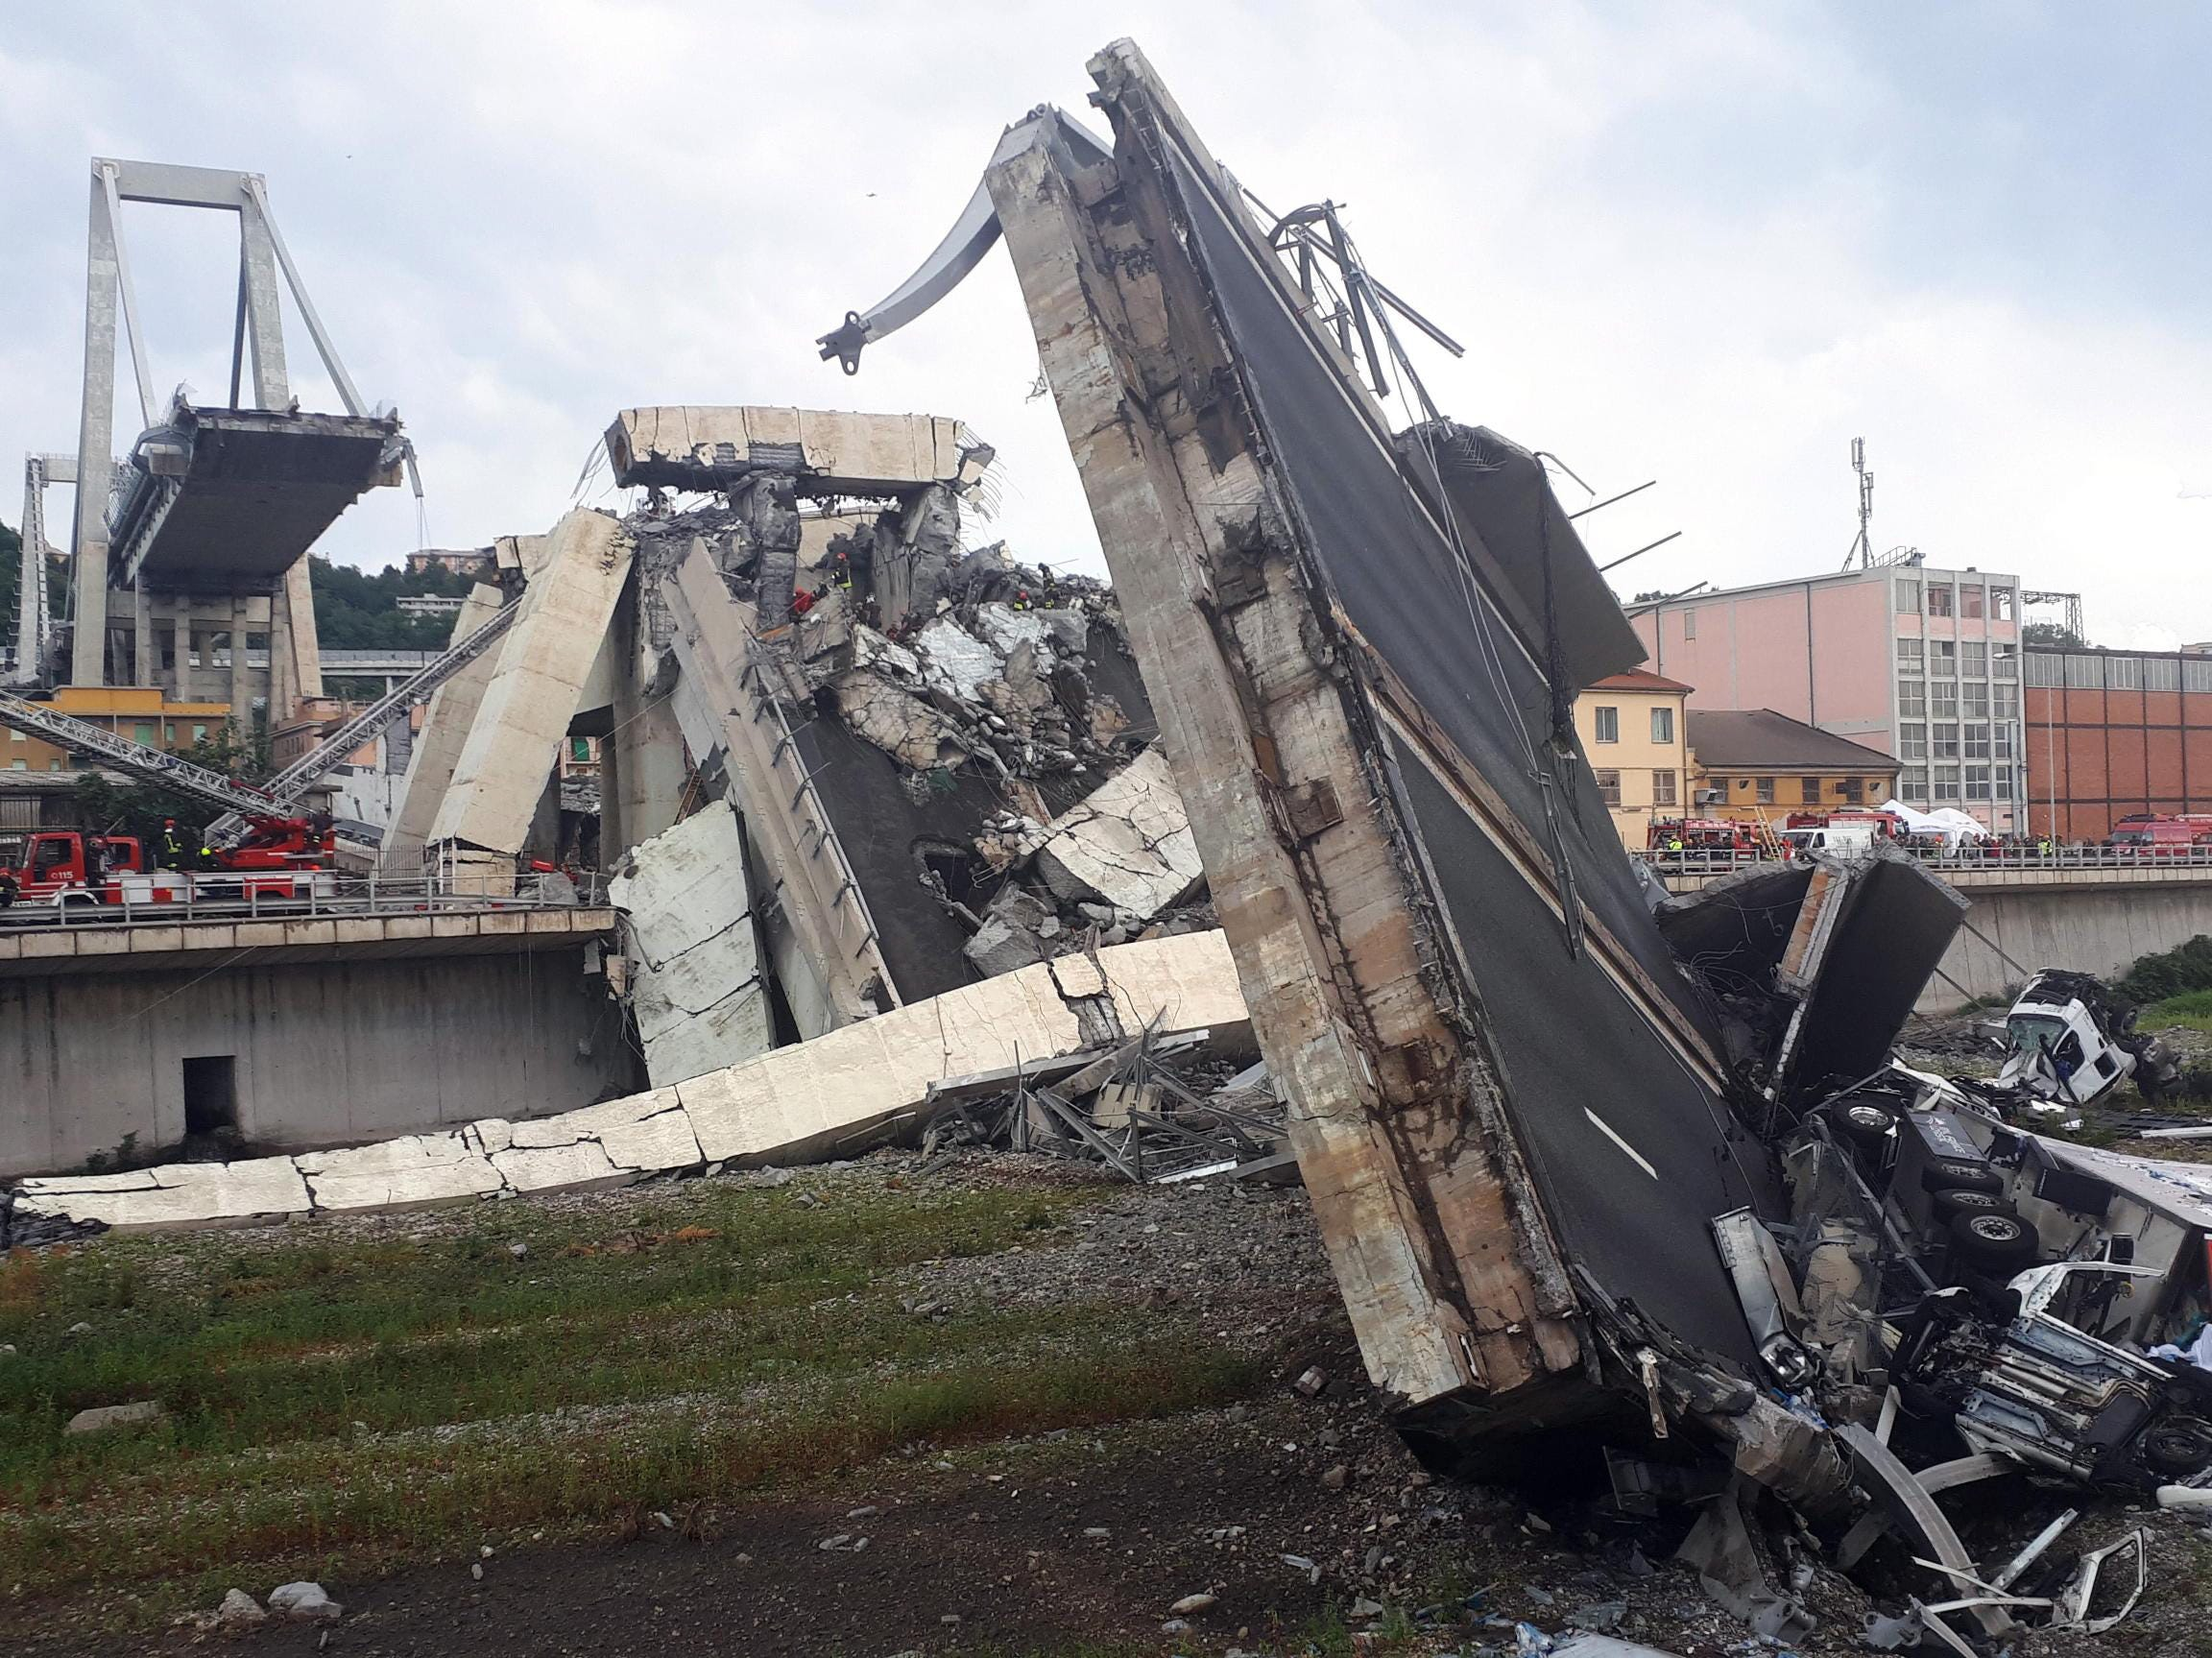 Aug. 14, 2018: Rescuers at work amid the rubble after a highway bridge collapsed in Genoa, Italy. A large section of the Morandi viaduct upon which the A10 motorway runs collapsed in Genoa on early Aug. 14. Several people have died, rescue sources said, as both sides of the highway fell. The viaduct gave way amid torrential rain.